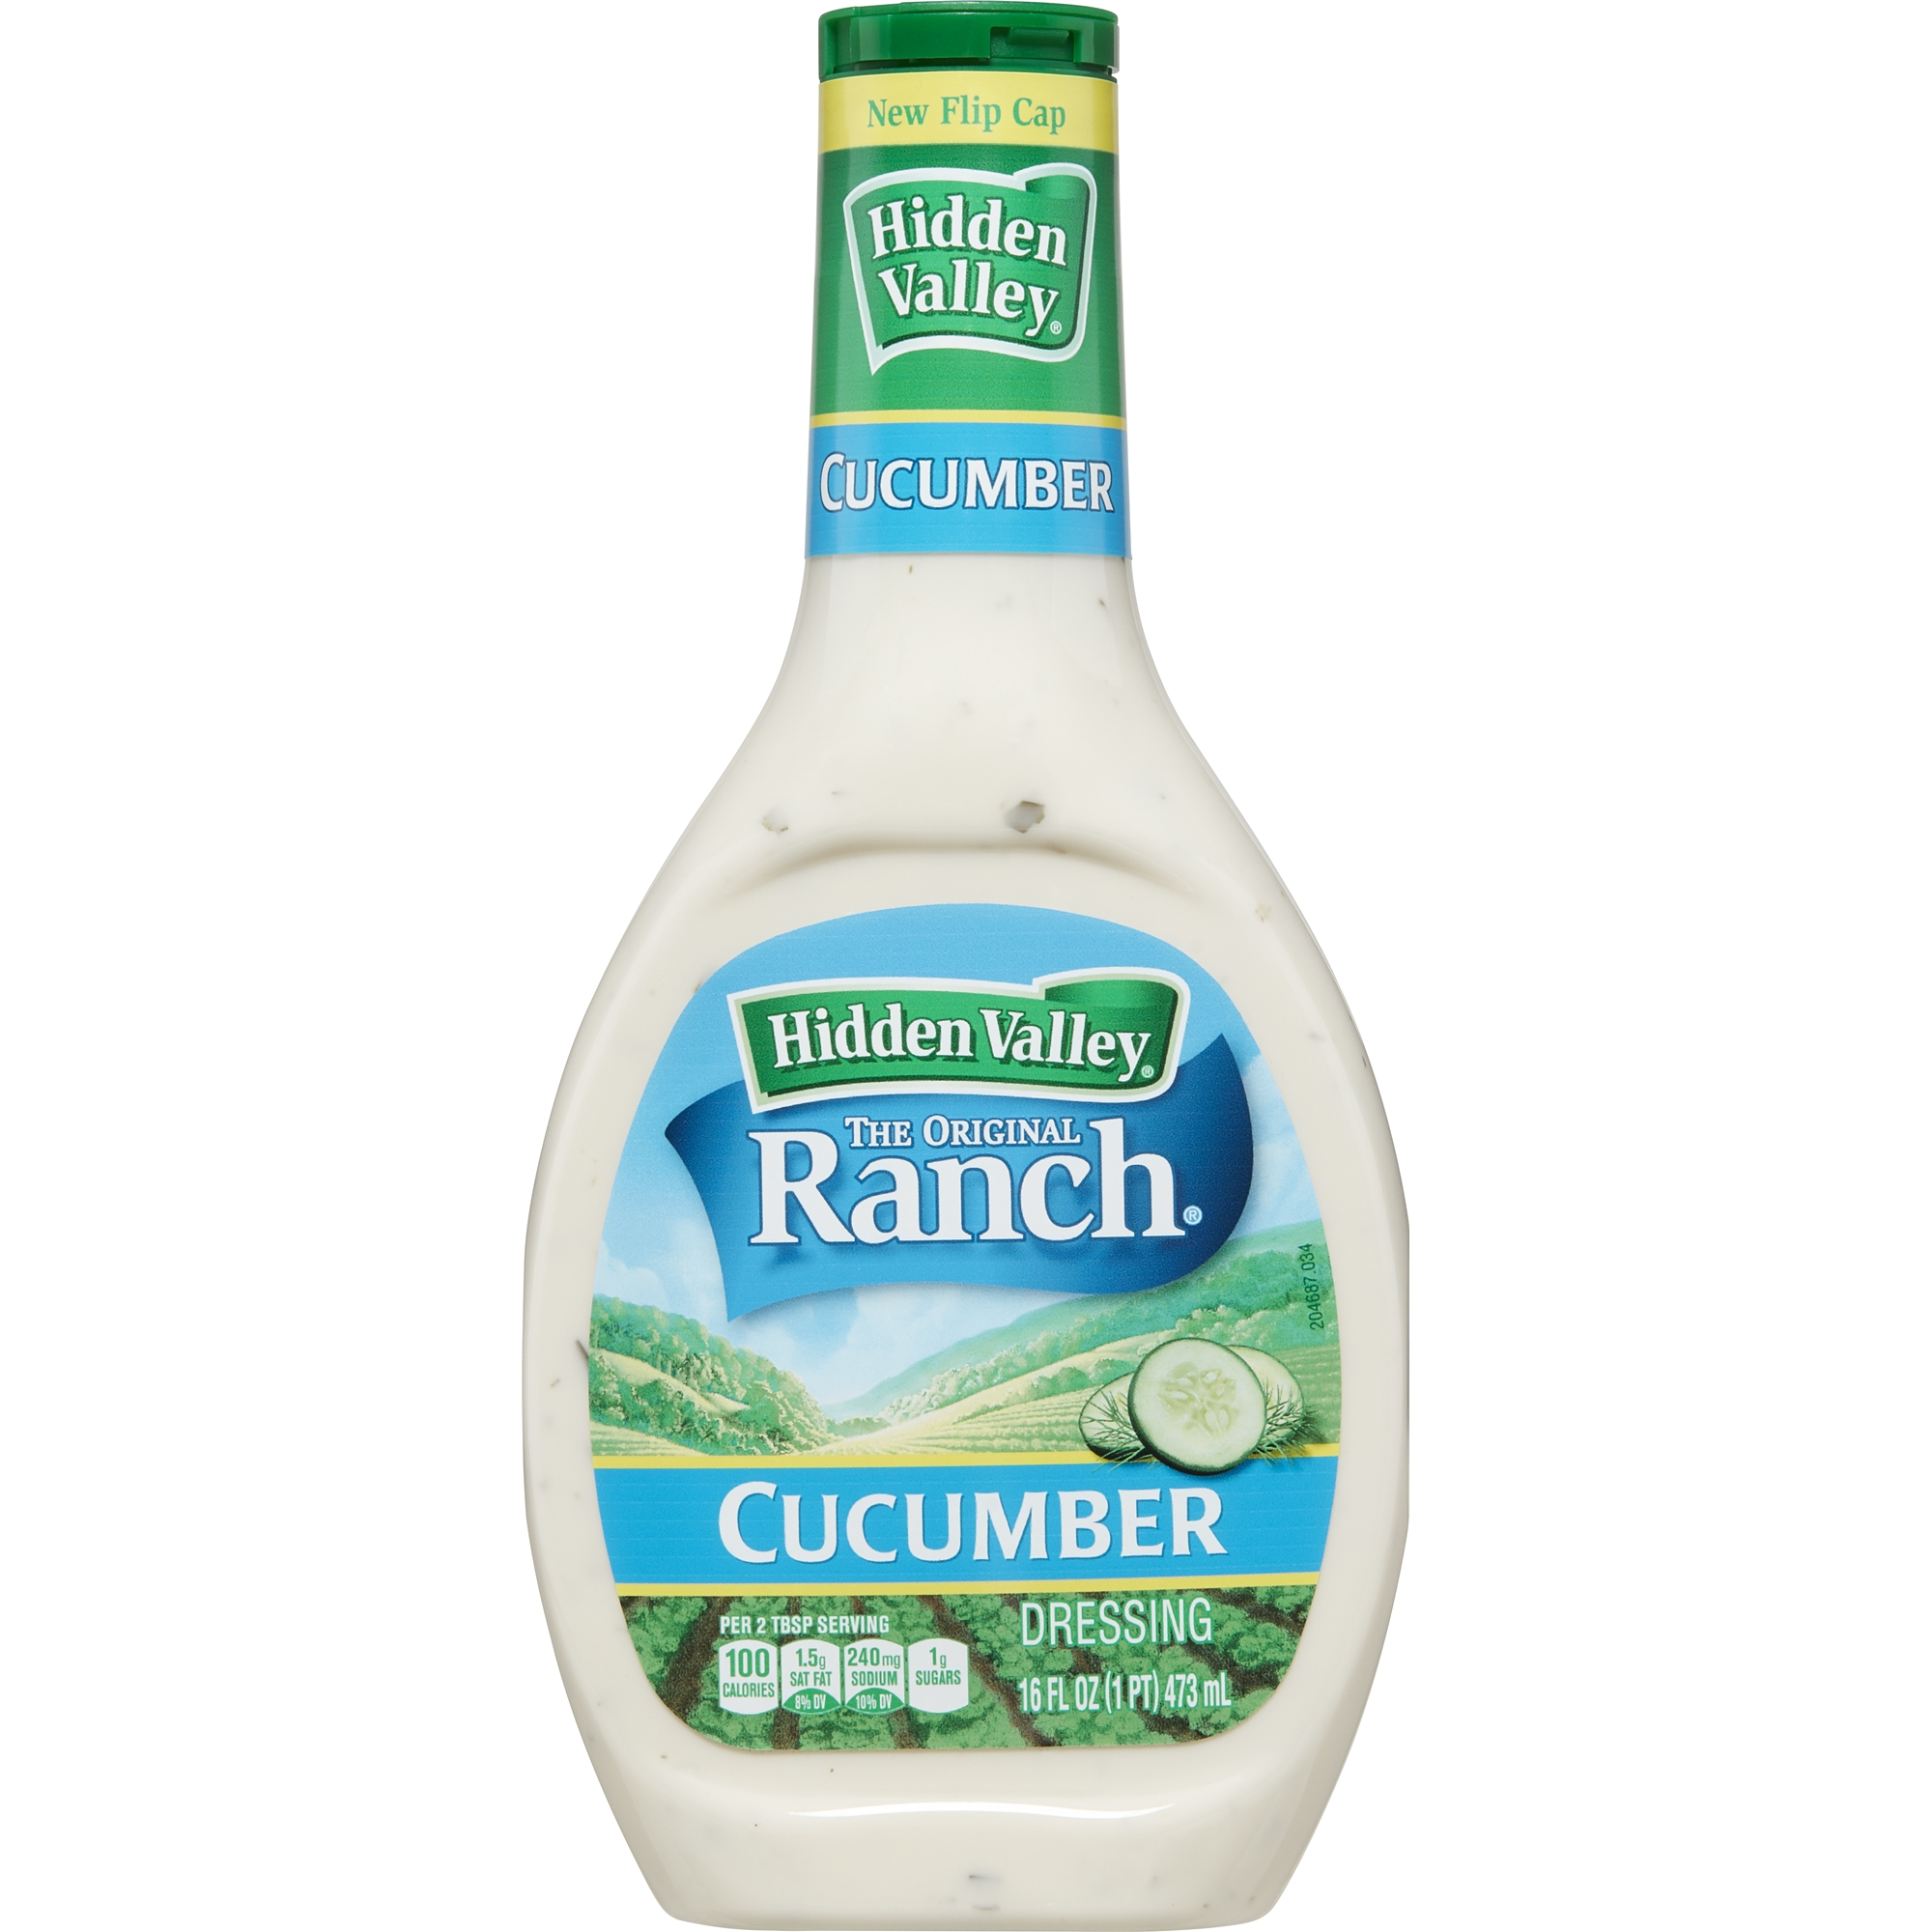 Hidden Valley Cucumber Ranch Salad Dressing & Topping, Gluten Free - 16 oz Bottle